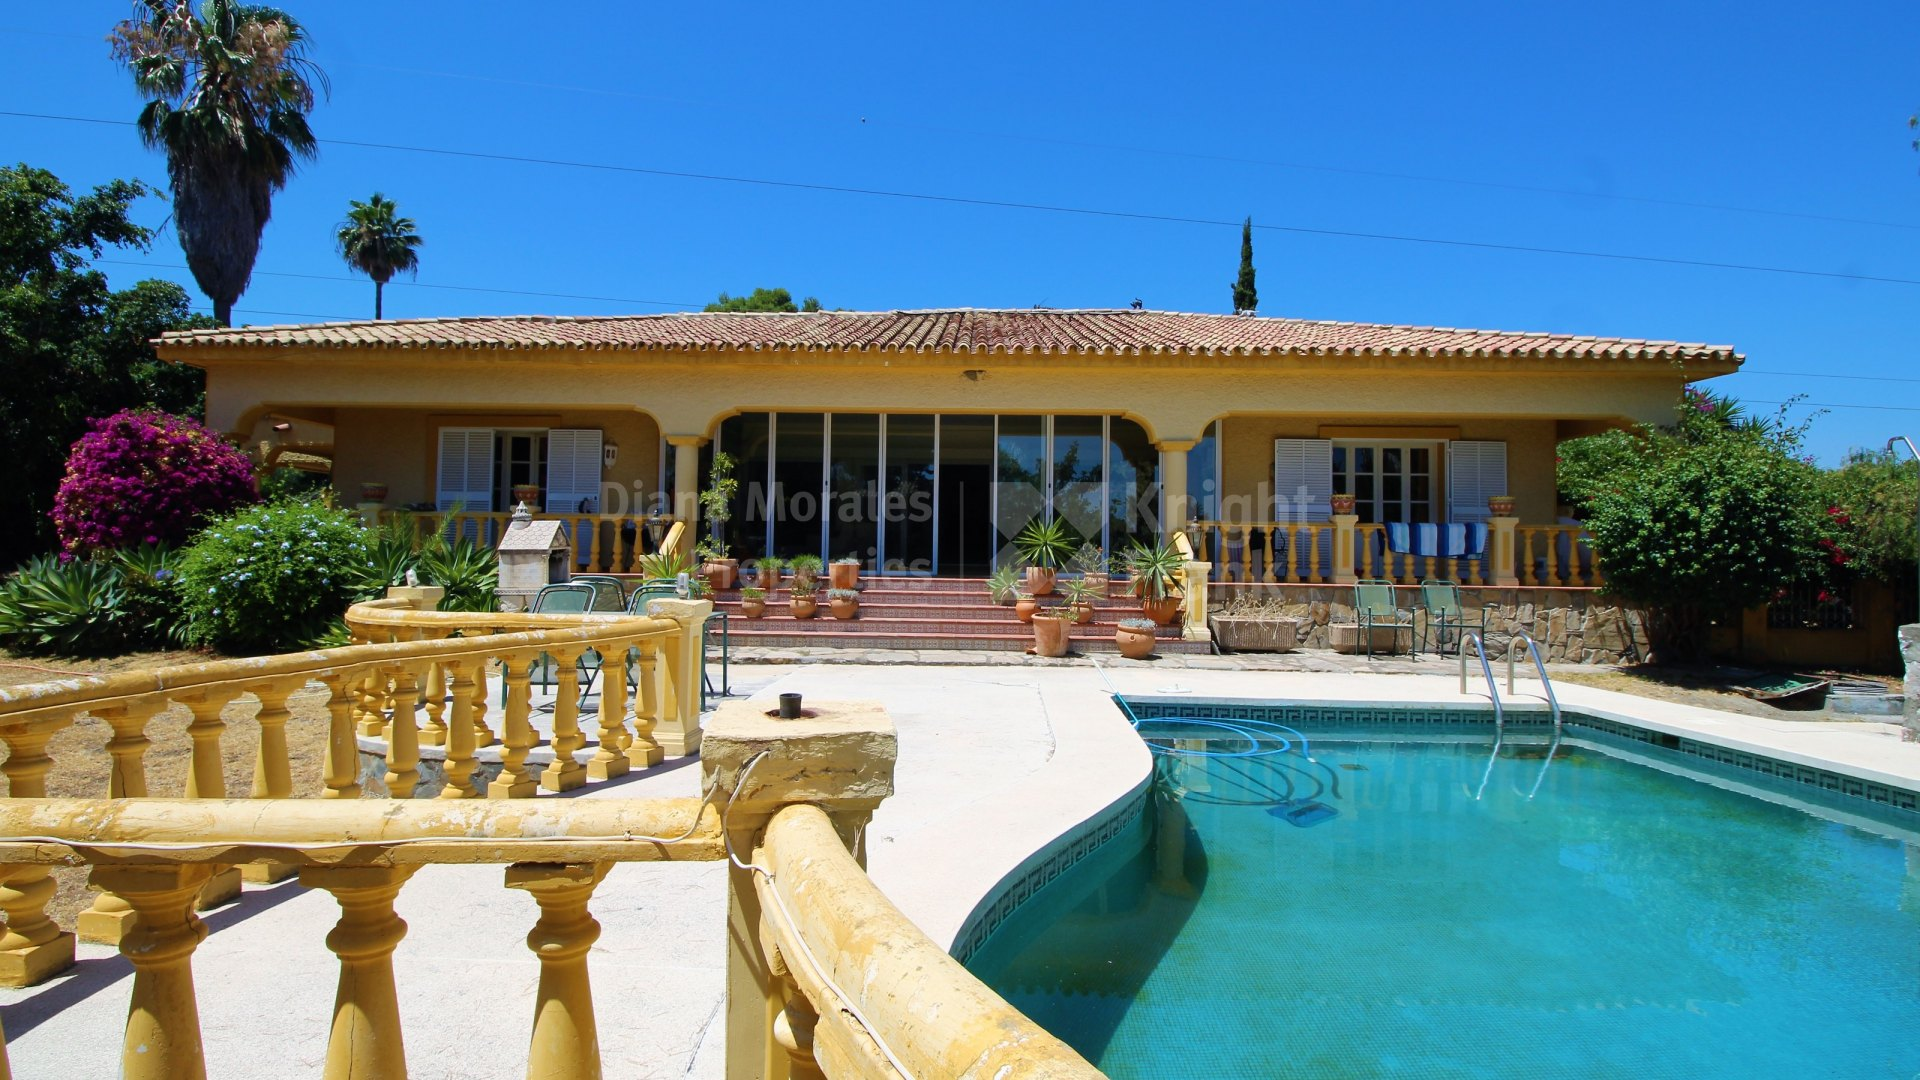 Single level villa in El Paraiso Medio